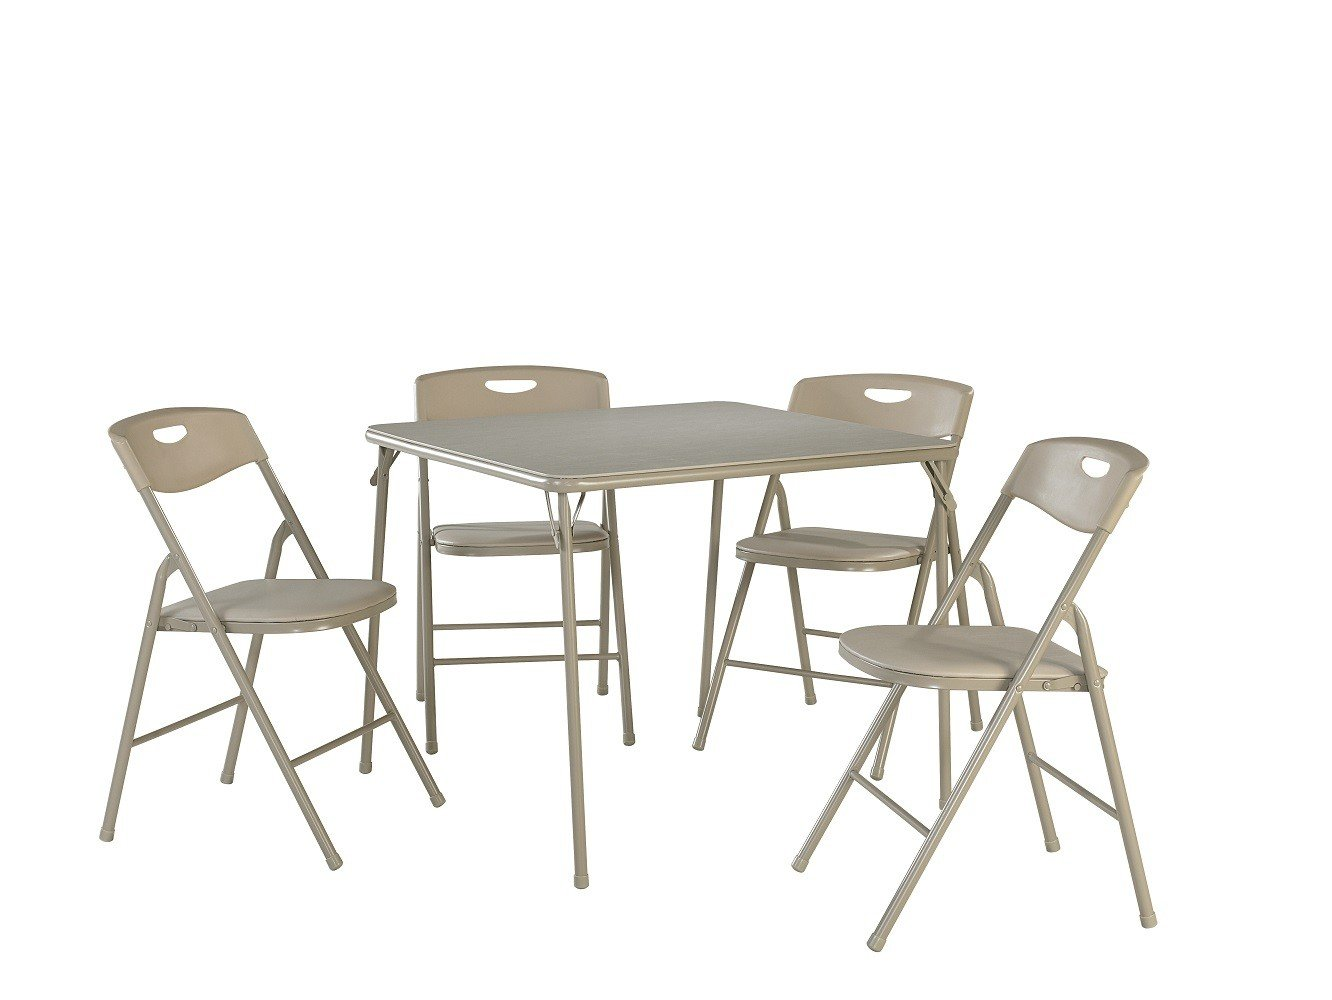 Amazon Cosco 5 Piece Folding Table and Chair Set Antique